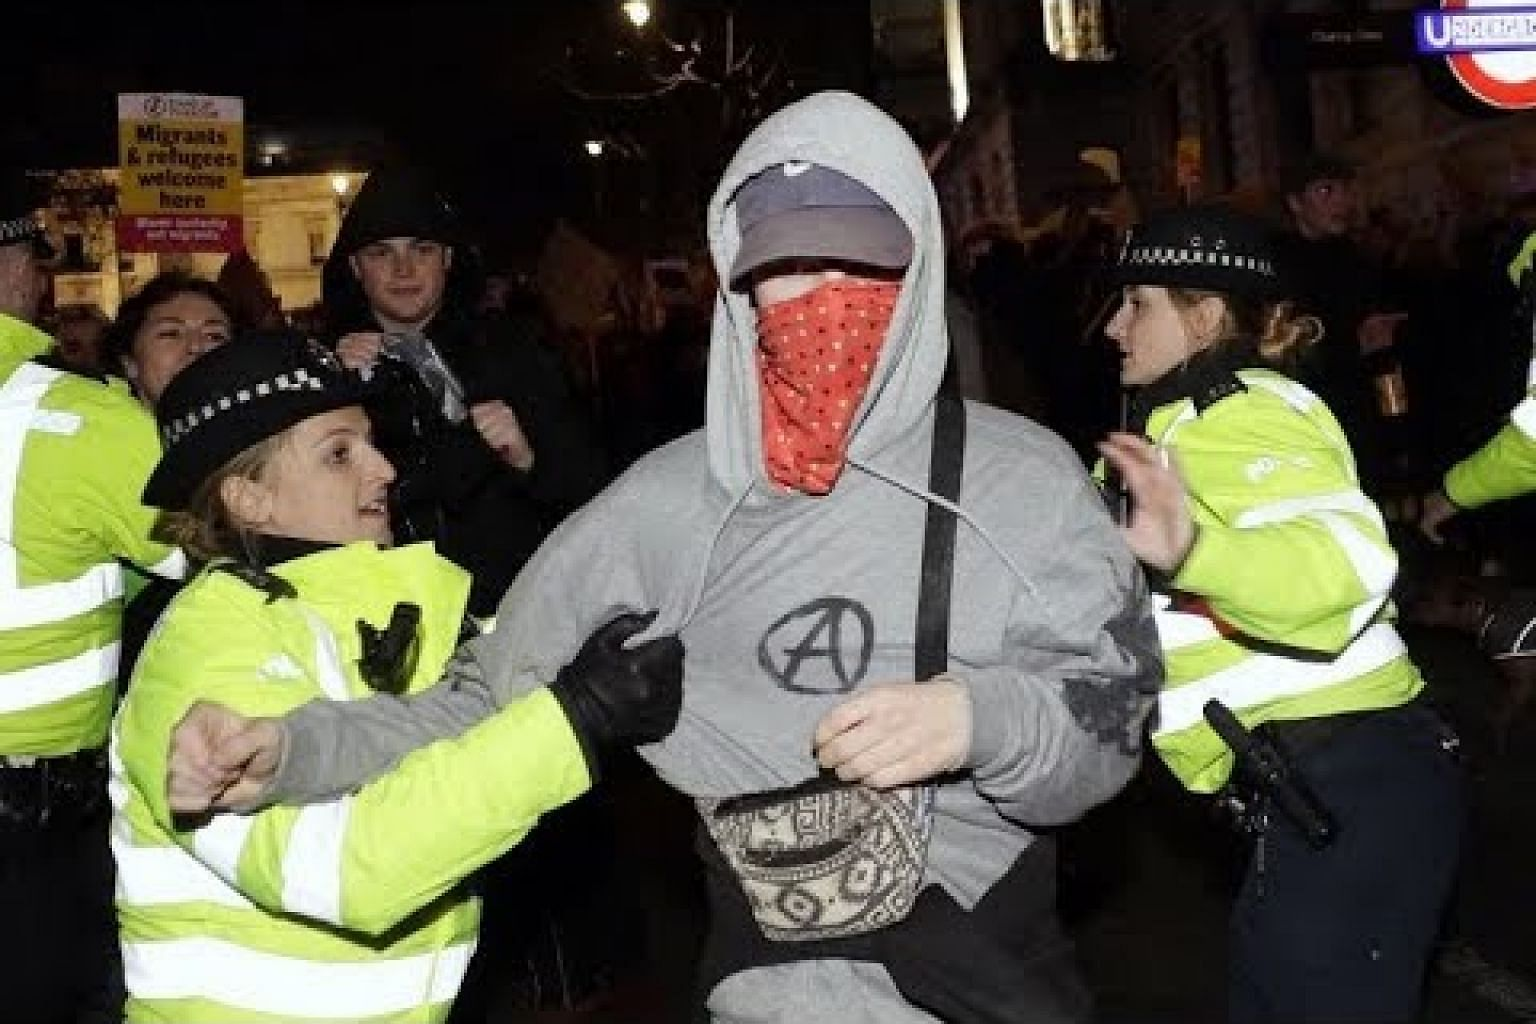 Police, protesters clash in London march against Johnson